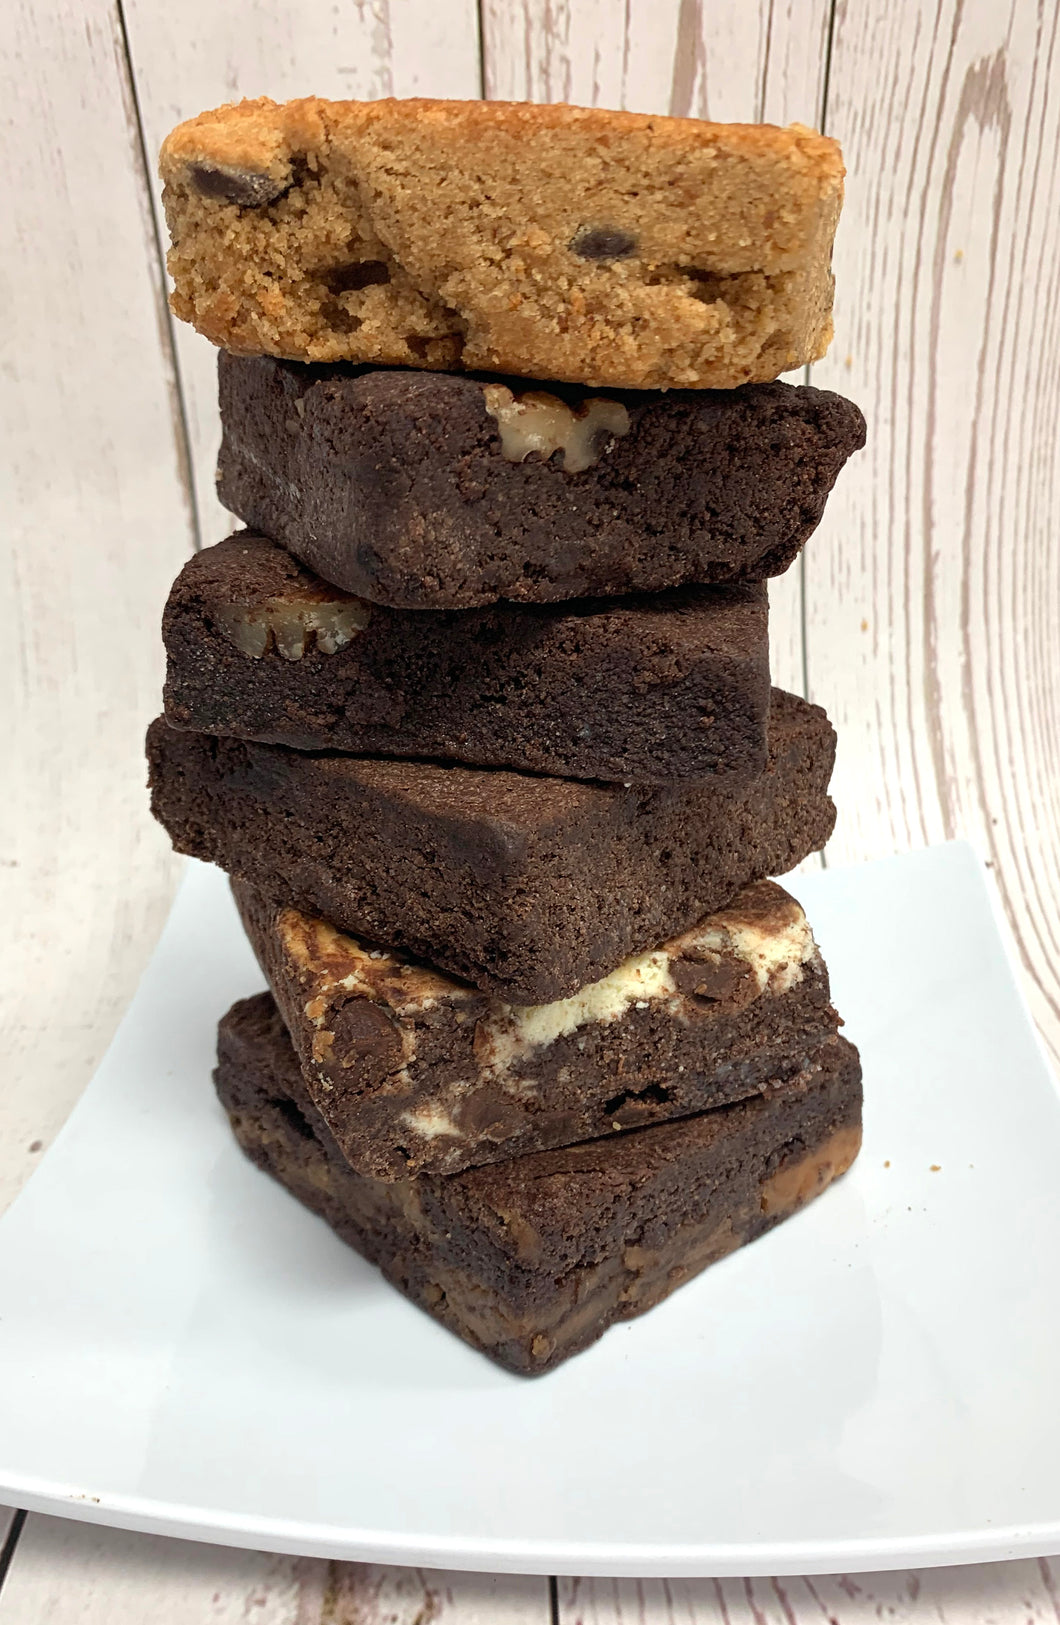 Keto Fudgy Brownies - Walnut Brownies - Gluten Free, Sugar Free, Low Carb, Keto & Diabetic Friendly